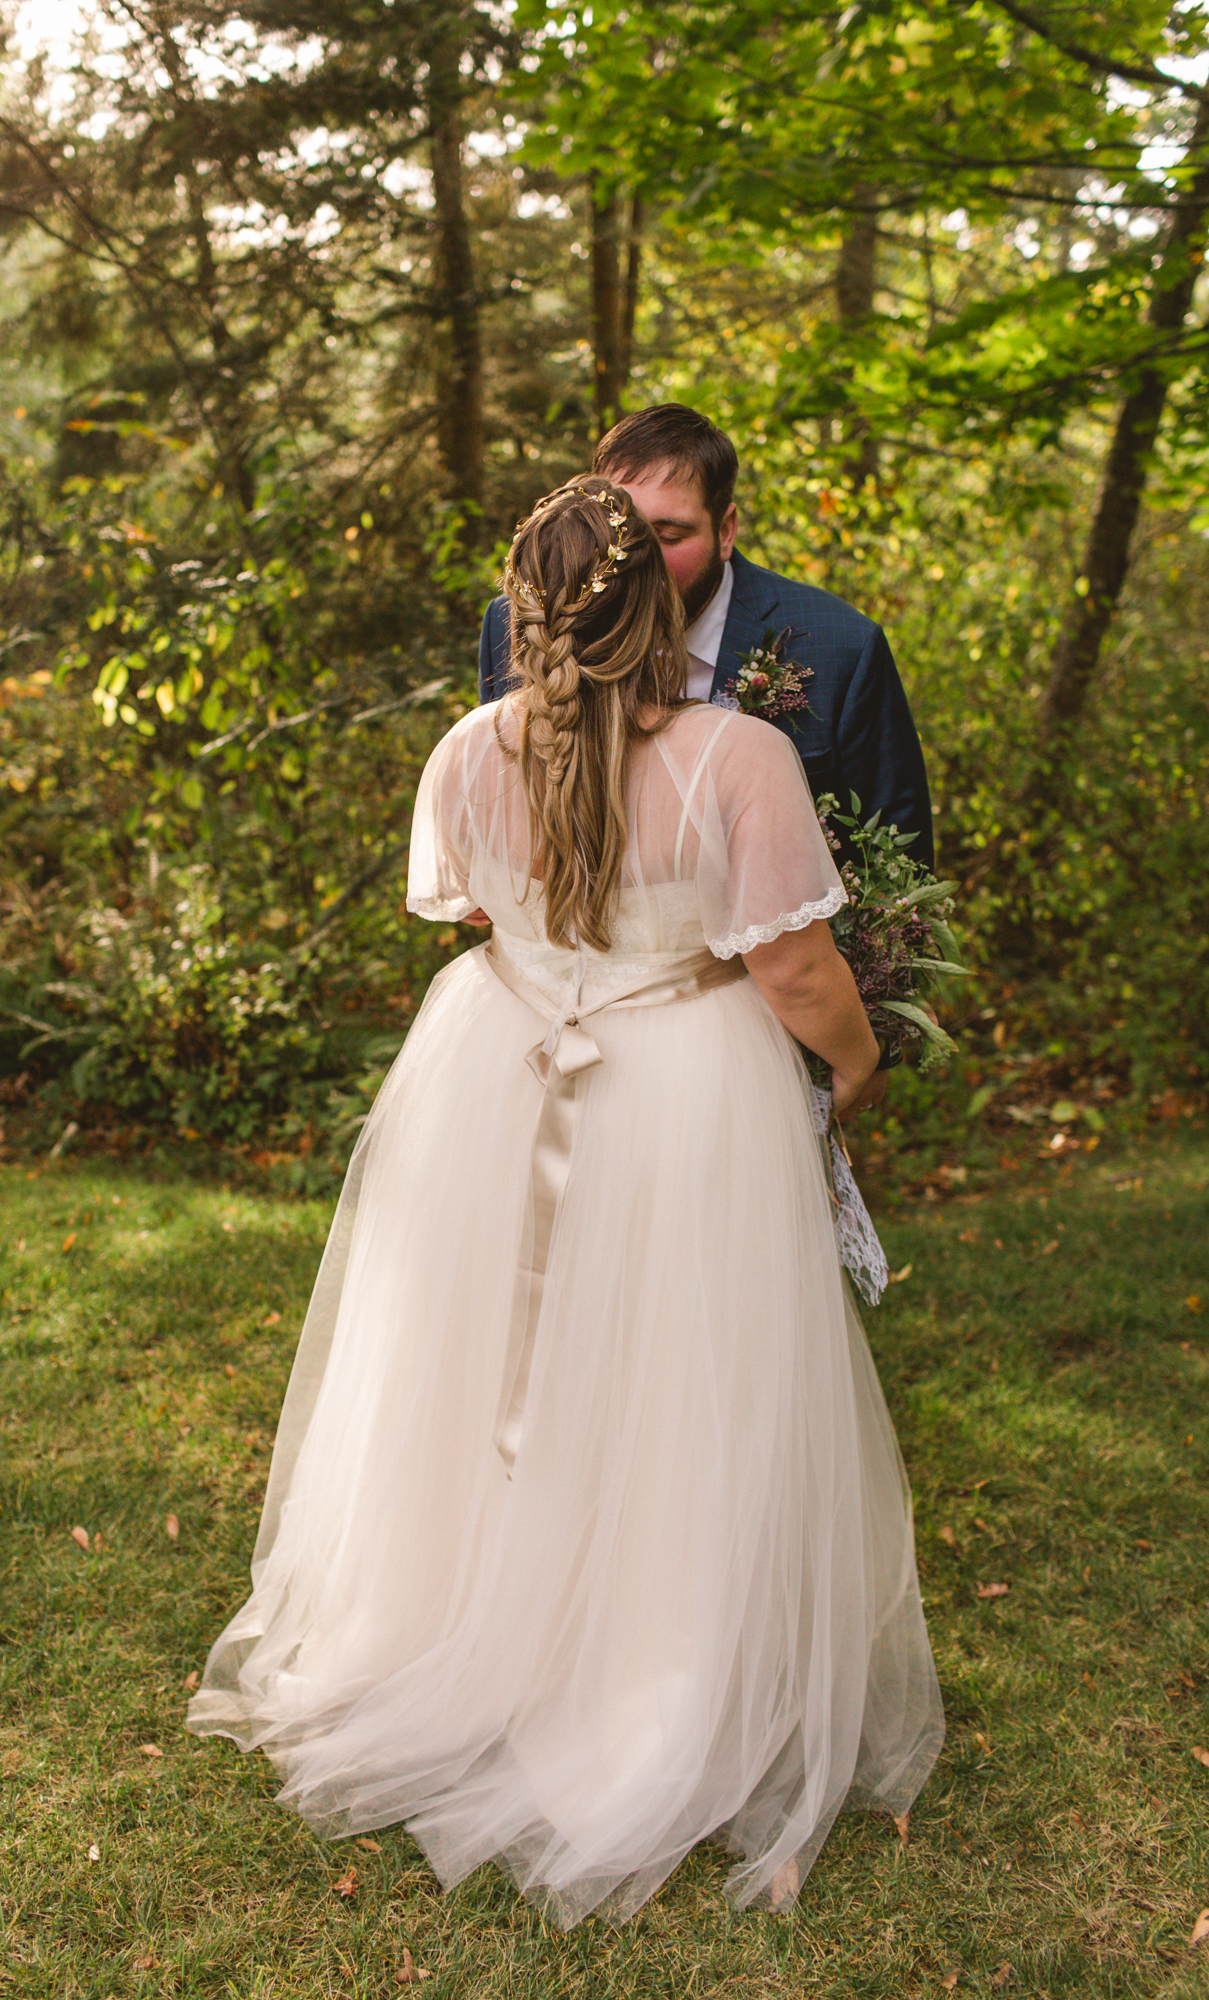 Brandi & Chad's Wedding-134.jpg